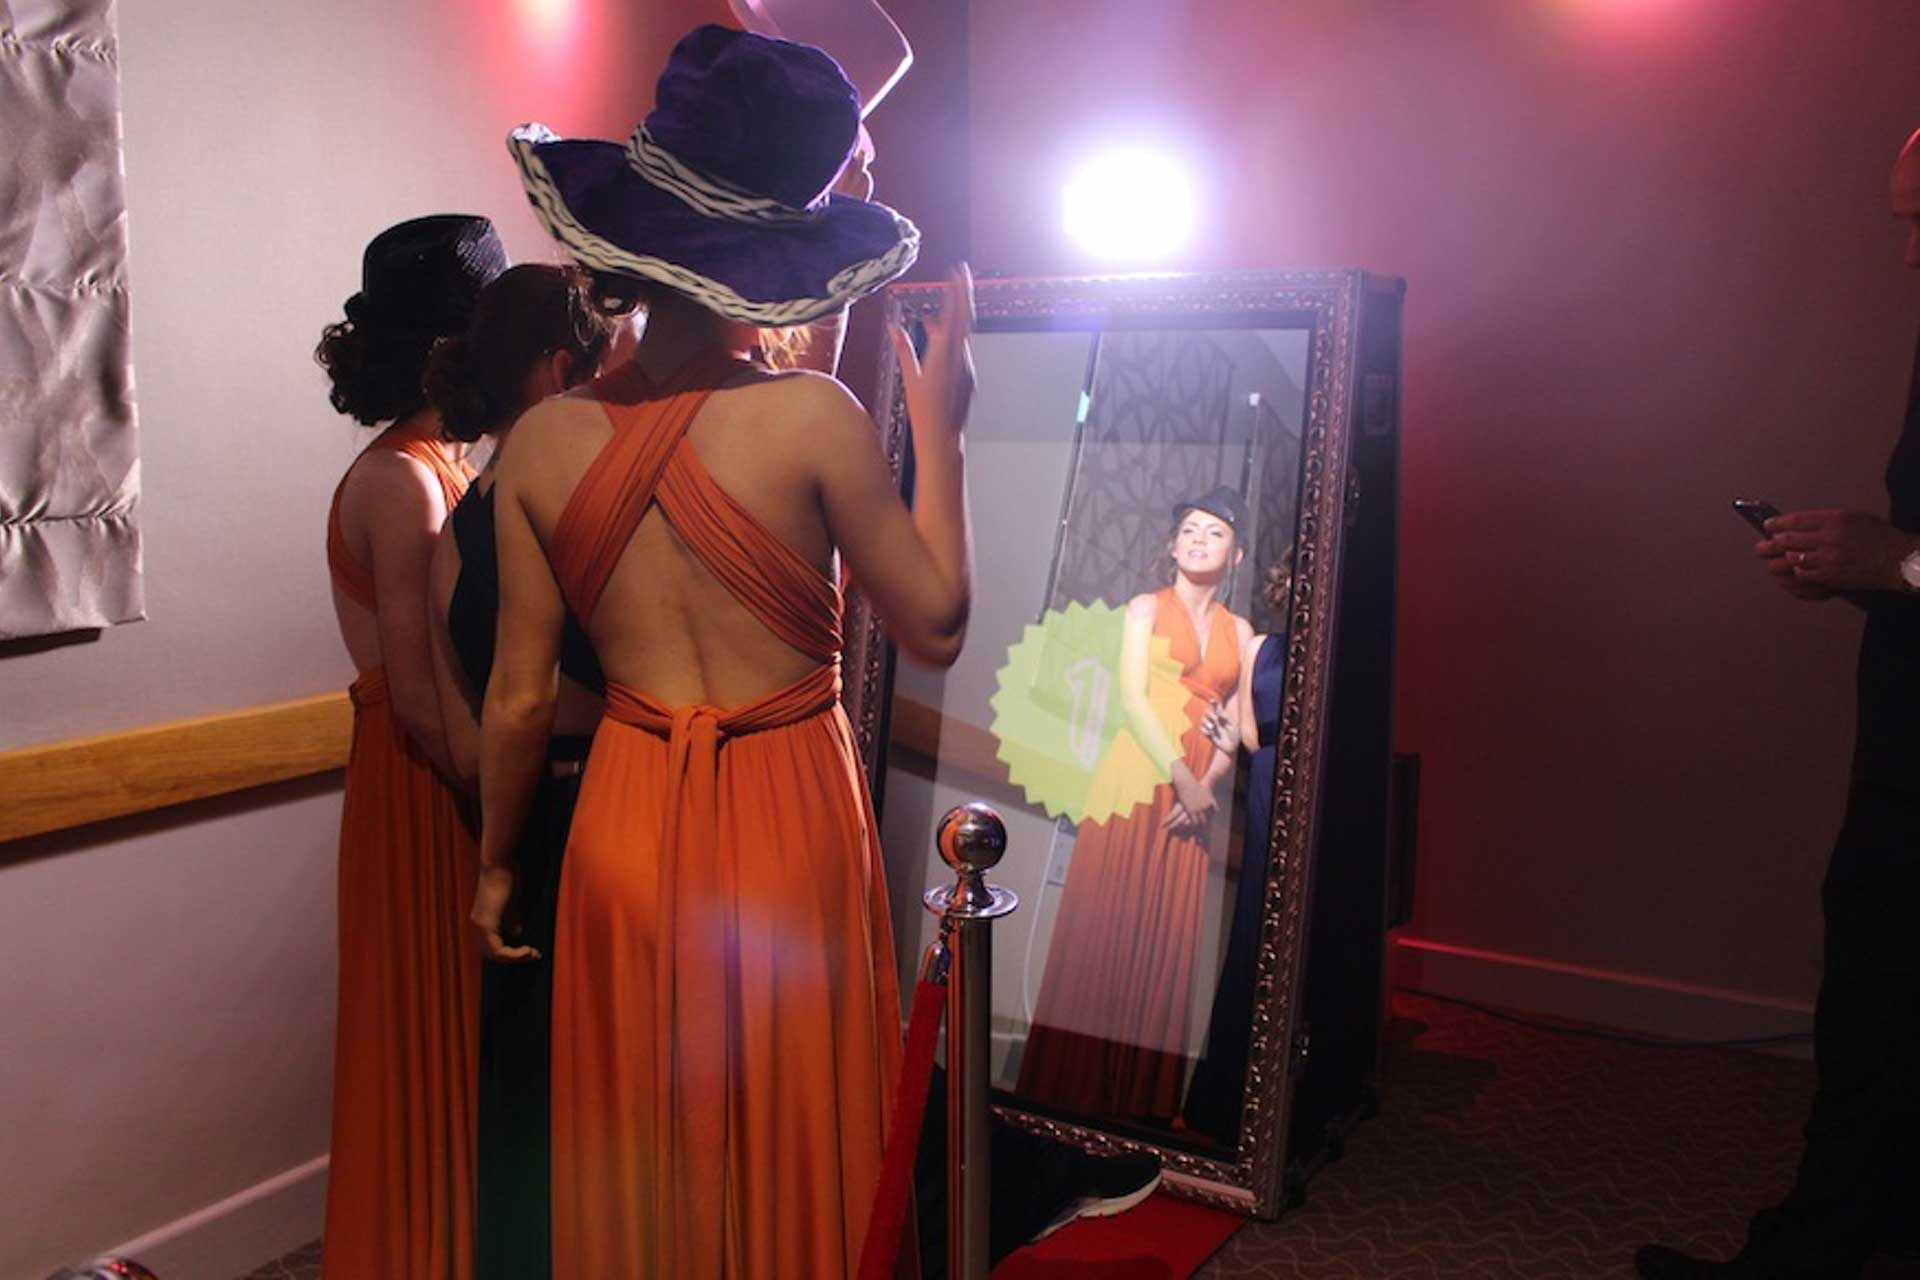 Magic Mirror hired at a Wedding as an alternative to one of our Photo Booths